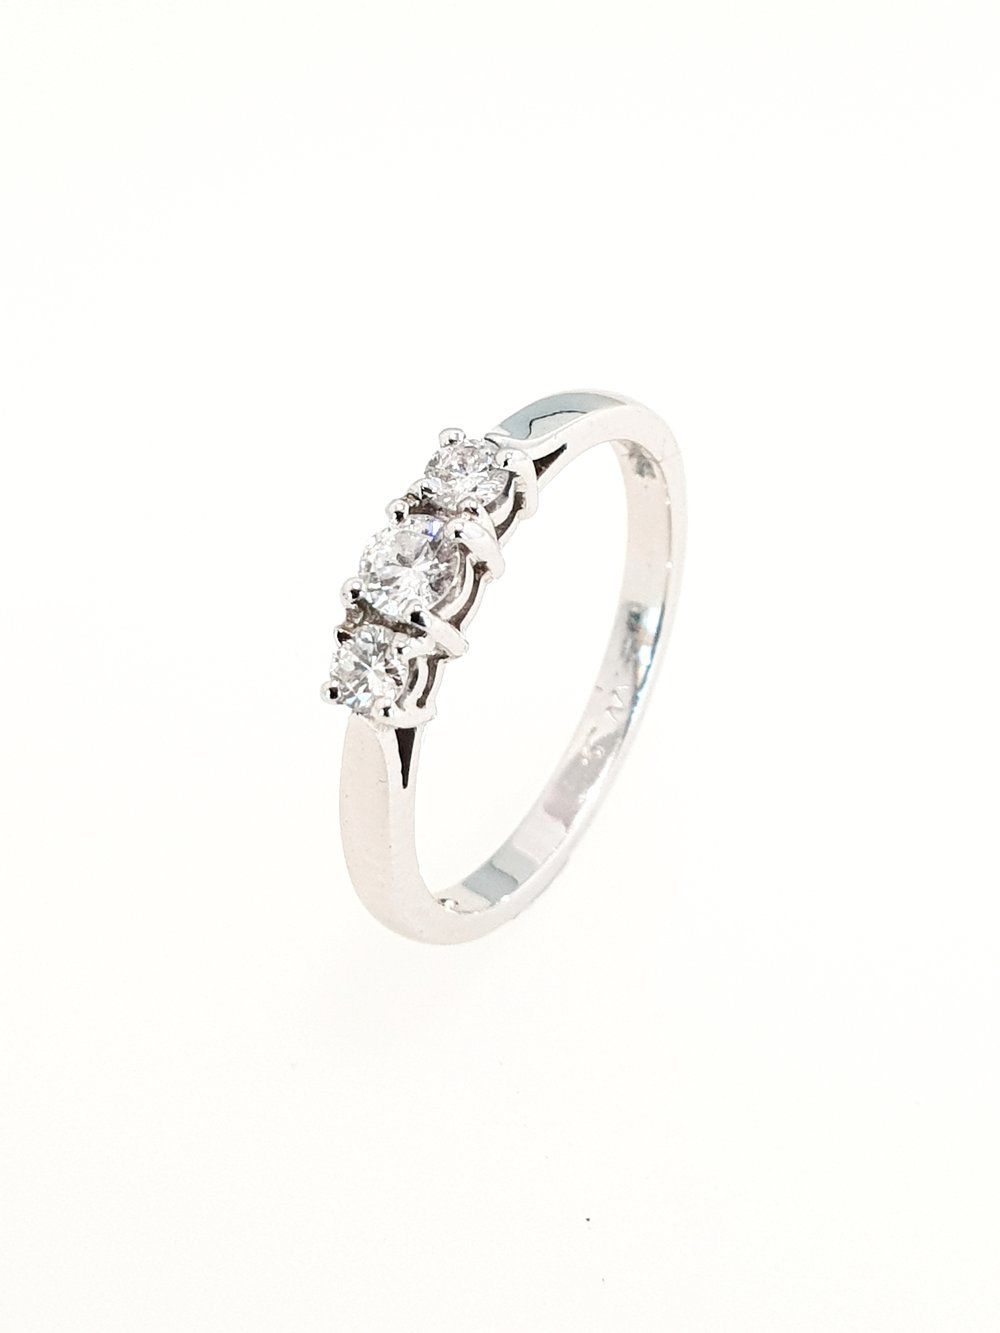 3 Stone Diamond Ring in Platinum  .30ct, G, Si2  Stock Code: N7574  £1610